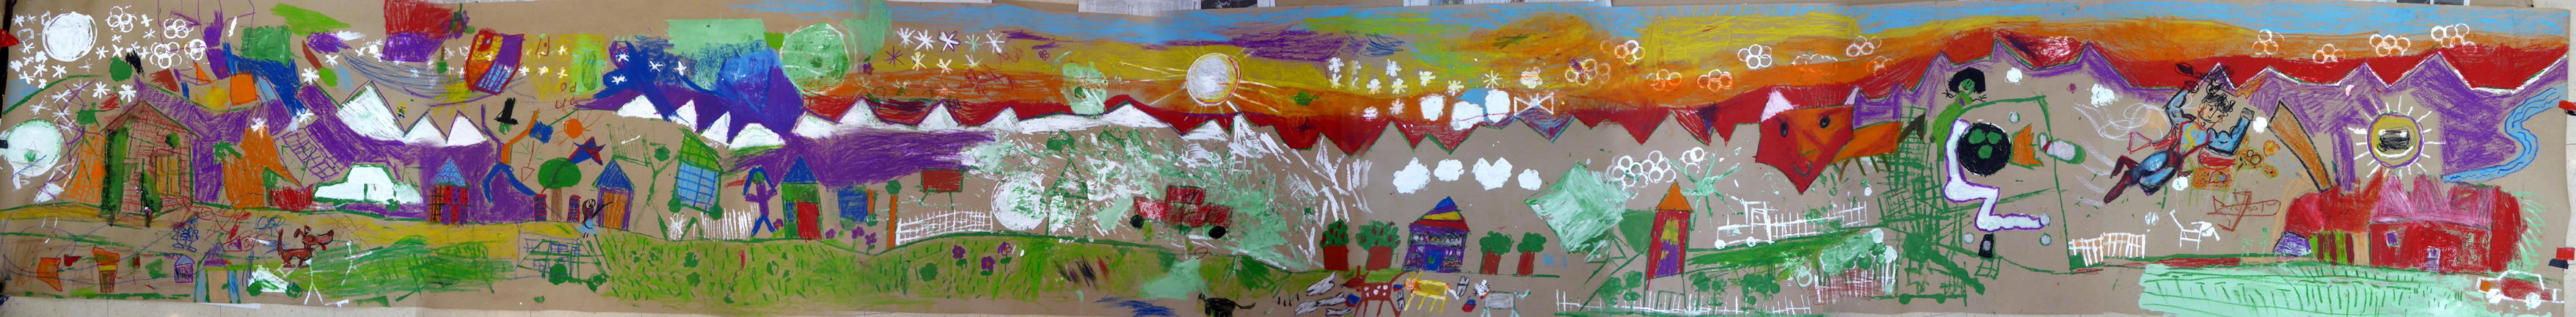 Mural created by children during art workshops supported by NYSCA, ArtsWestchester and Port Chester Public Library